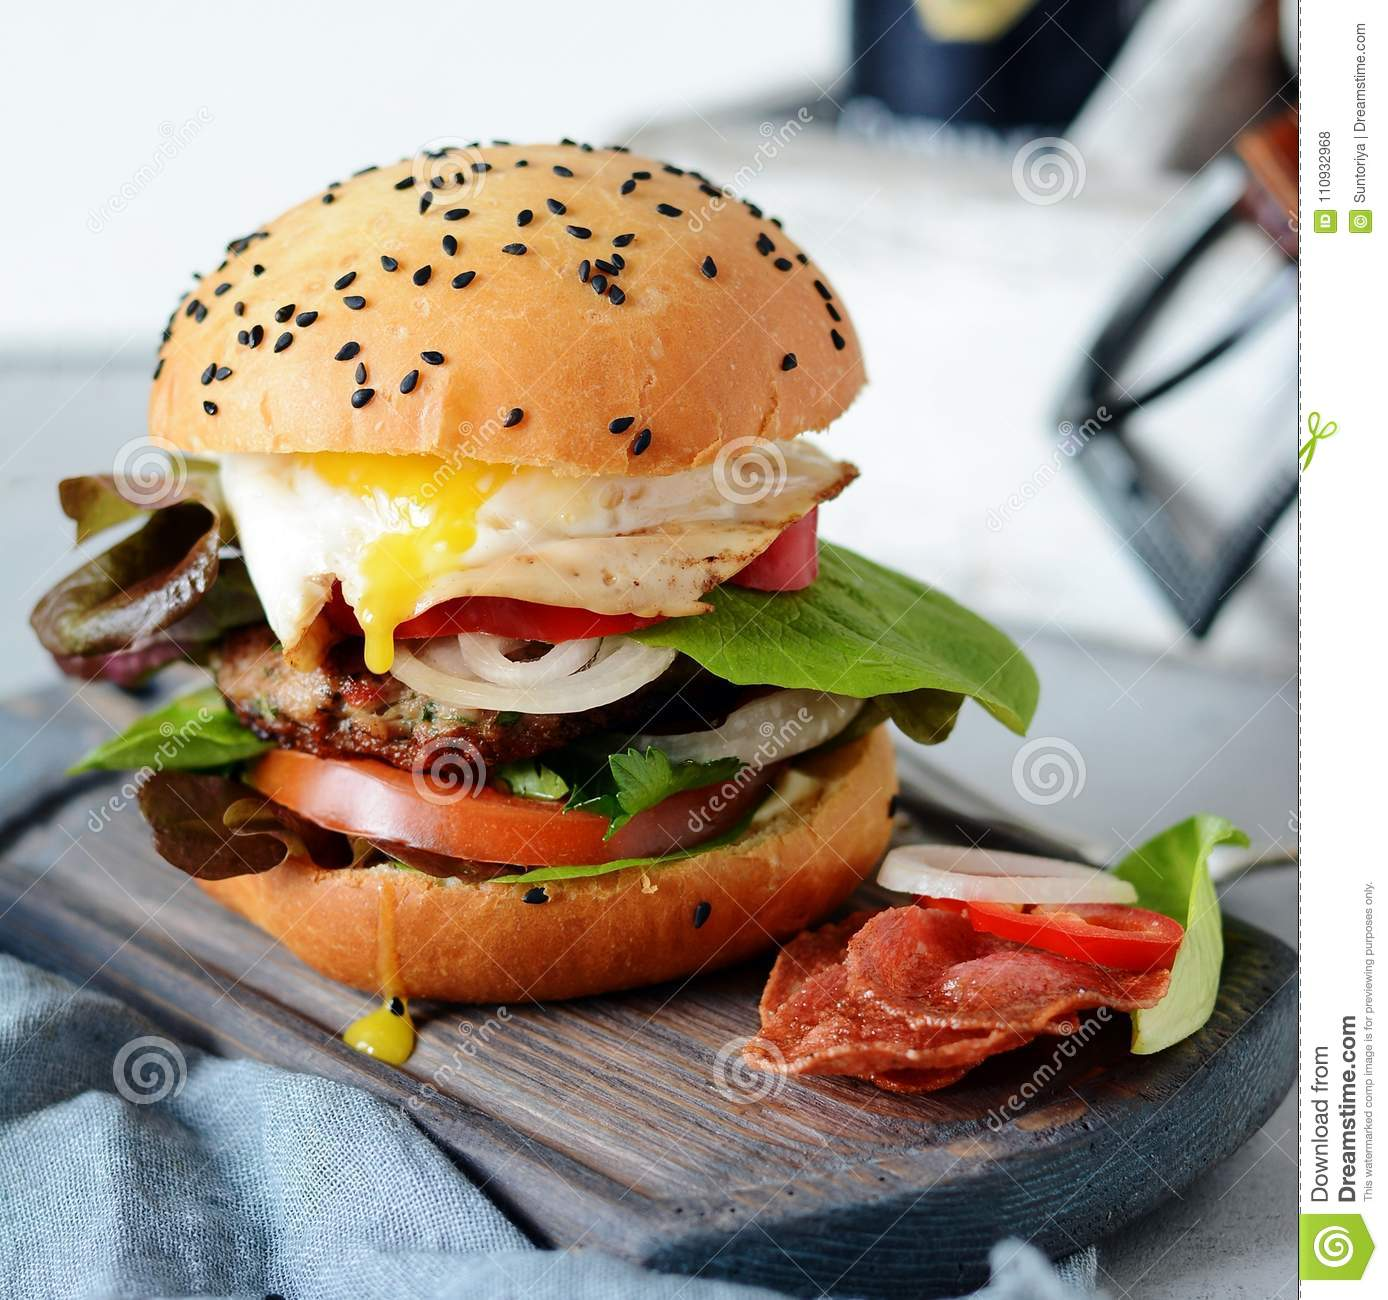 A large burger with a cutlet, vegetables, egg and a fresh roll. Sandwich for breakfast. Fast food. Men`s Food.